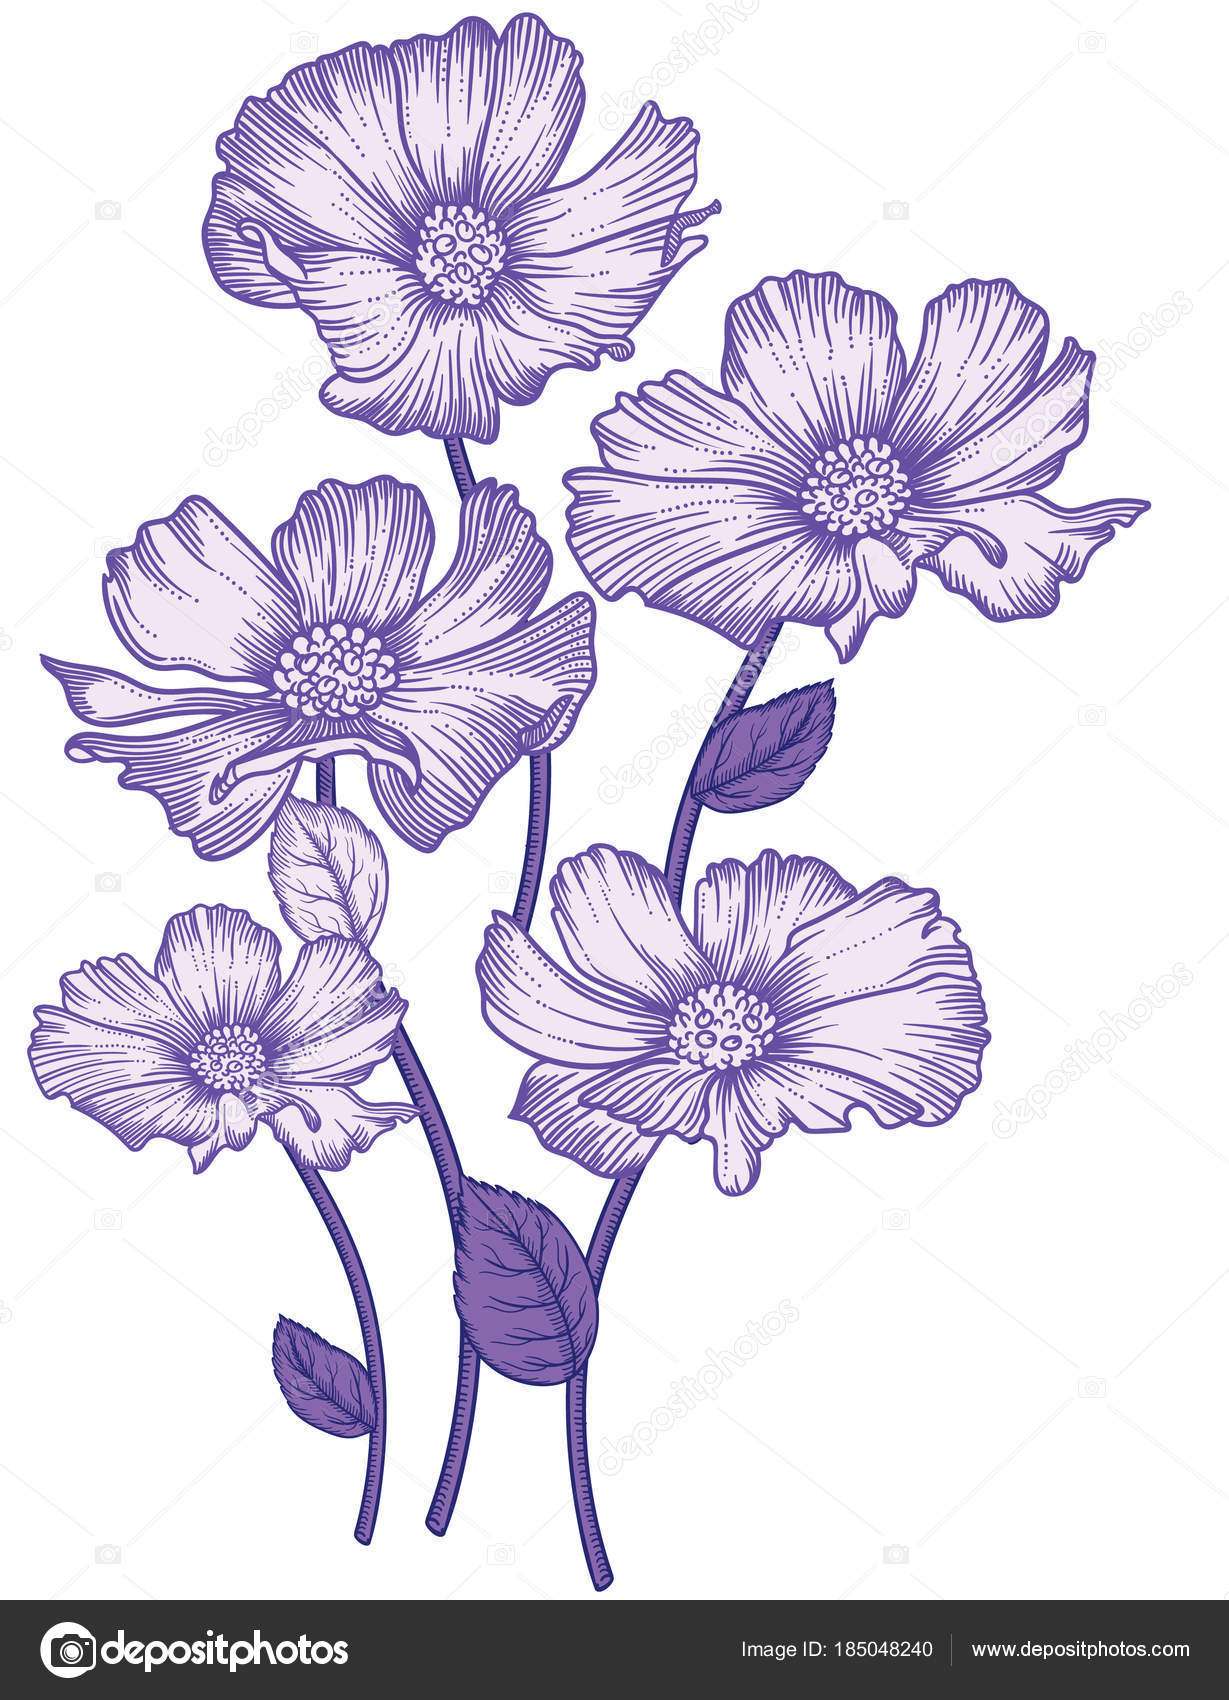 Decorative Flower Borders: Blooming Forest Flowers , Detailed Hand Drawn Vector